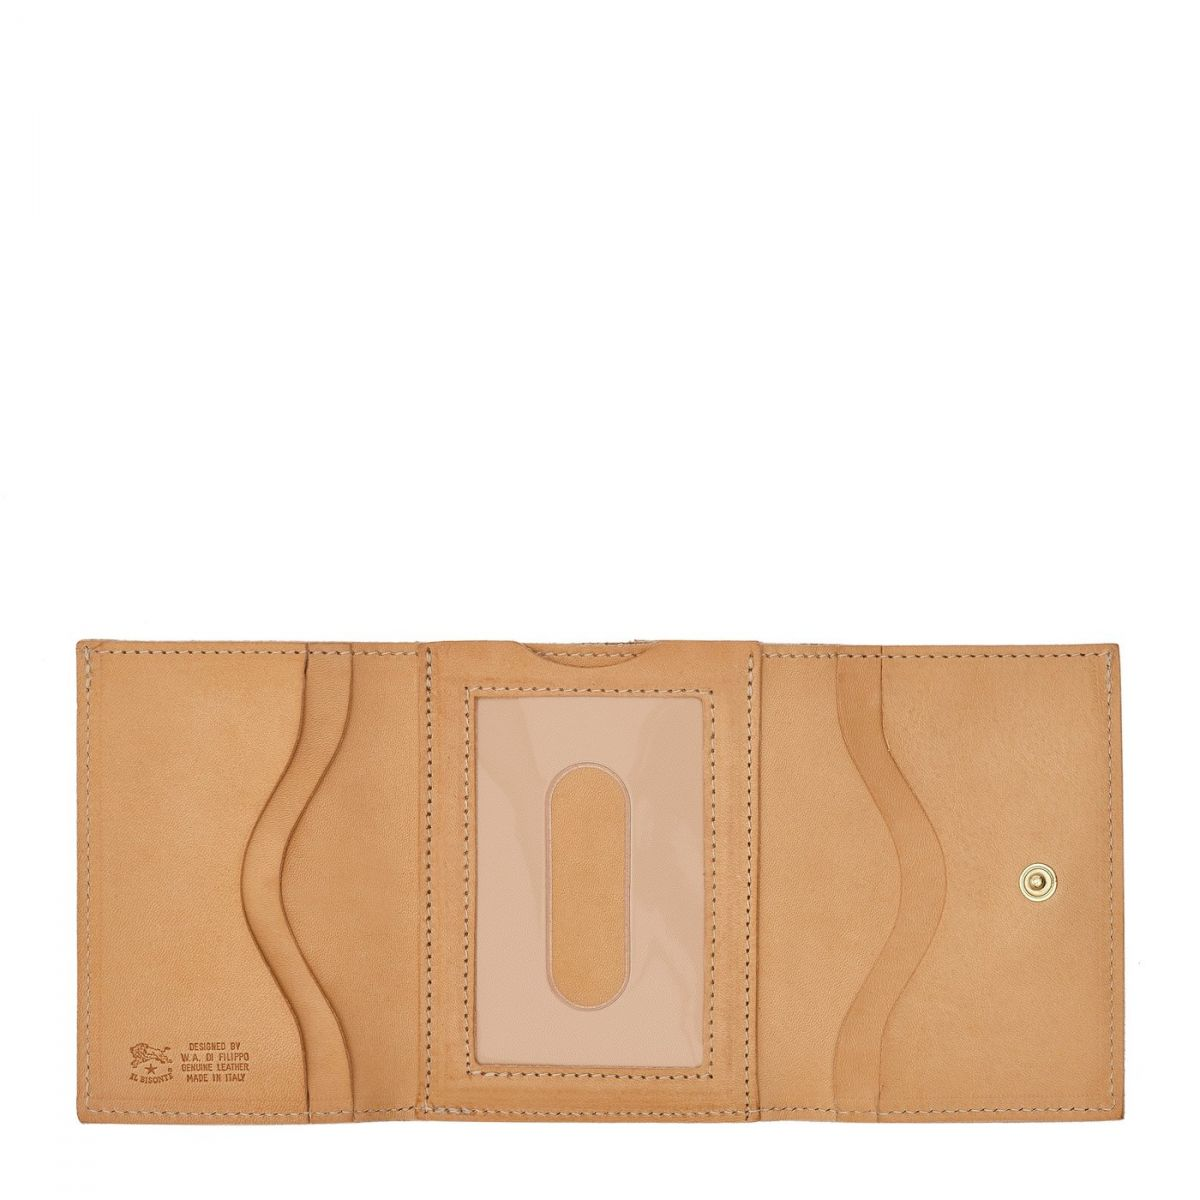 Wallet  in Cowhide Double Leather SMW036 color Natural | Details